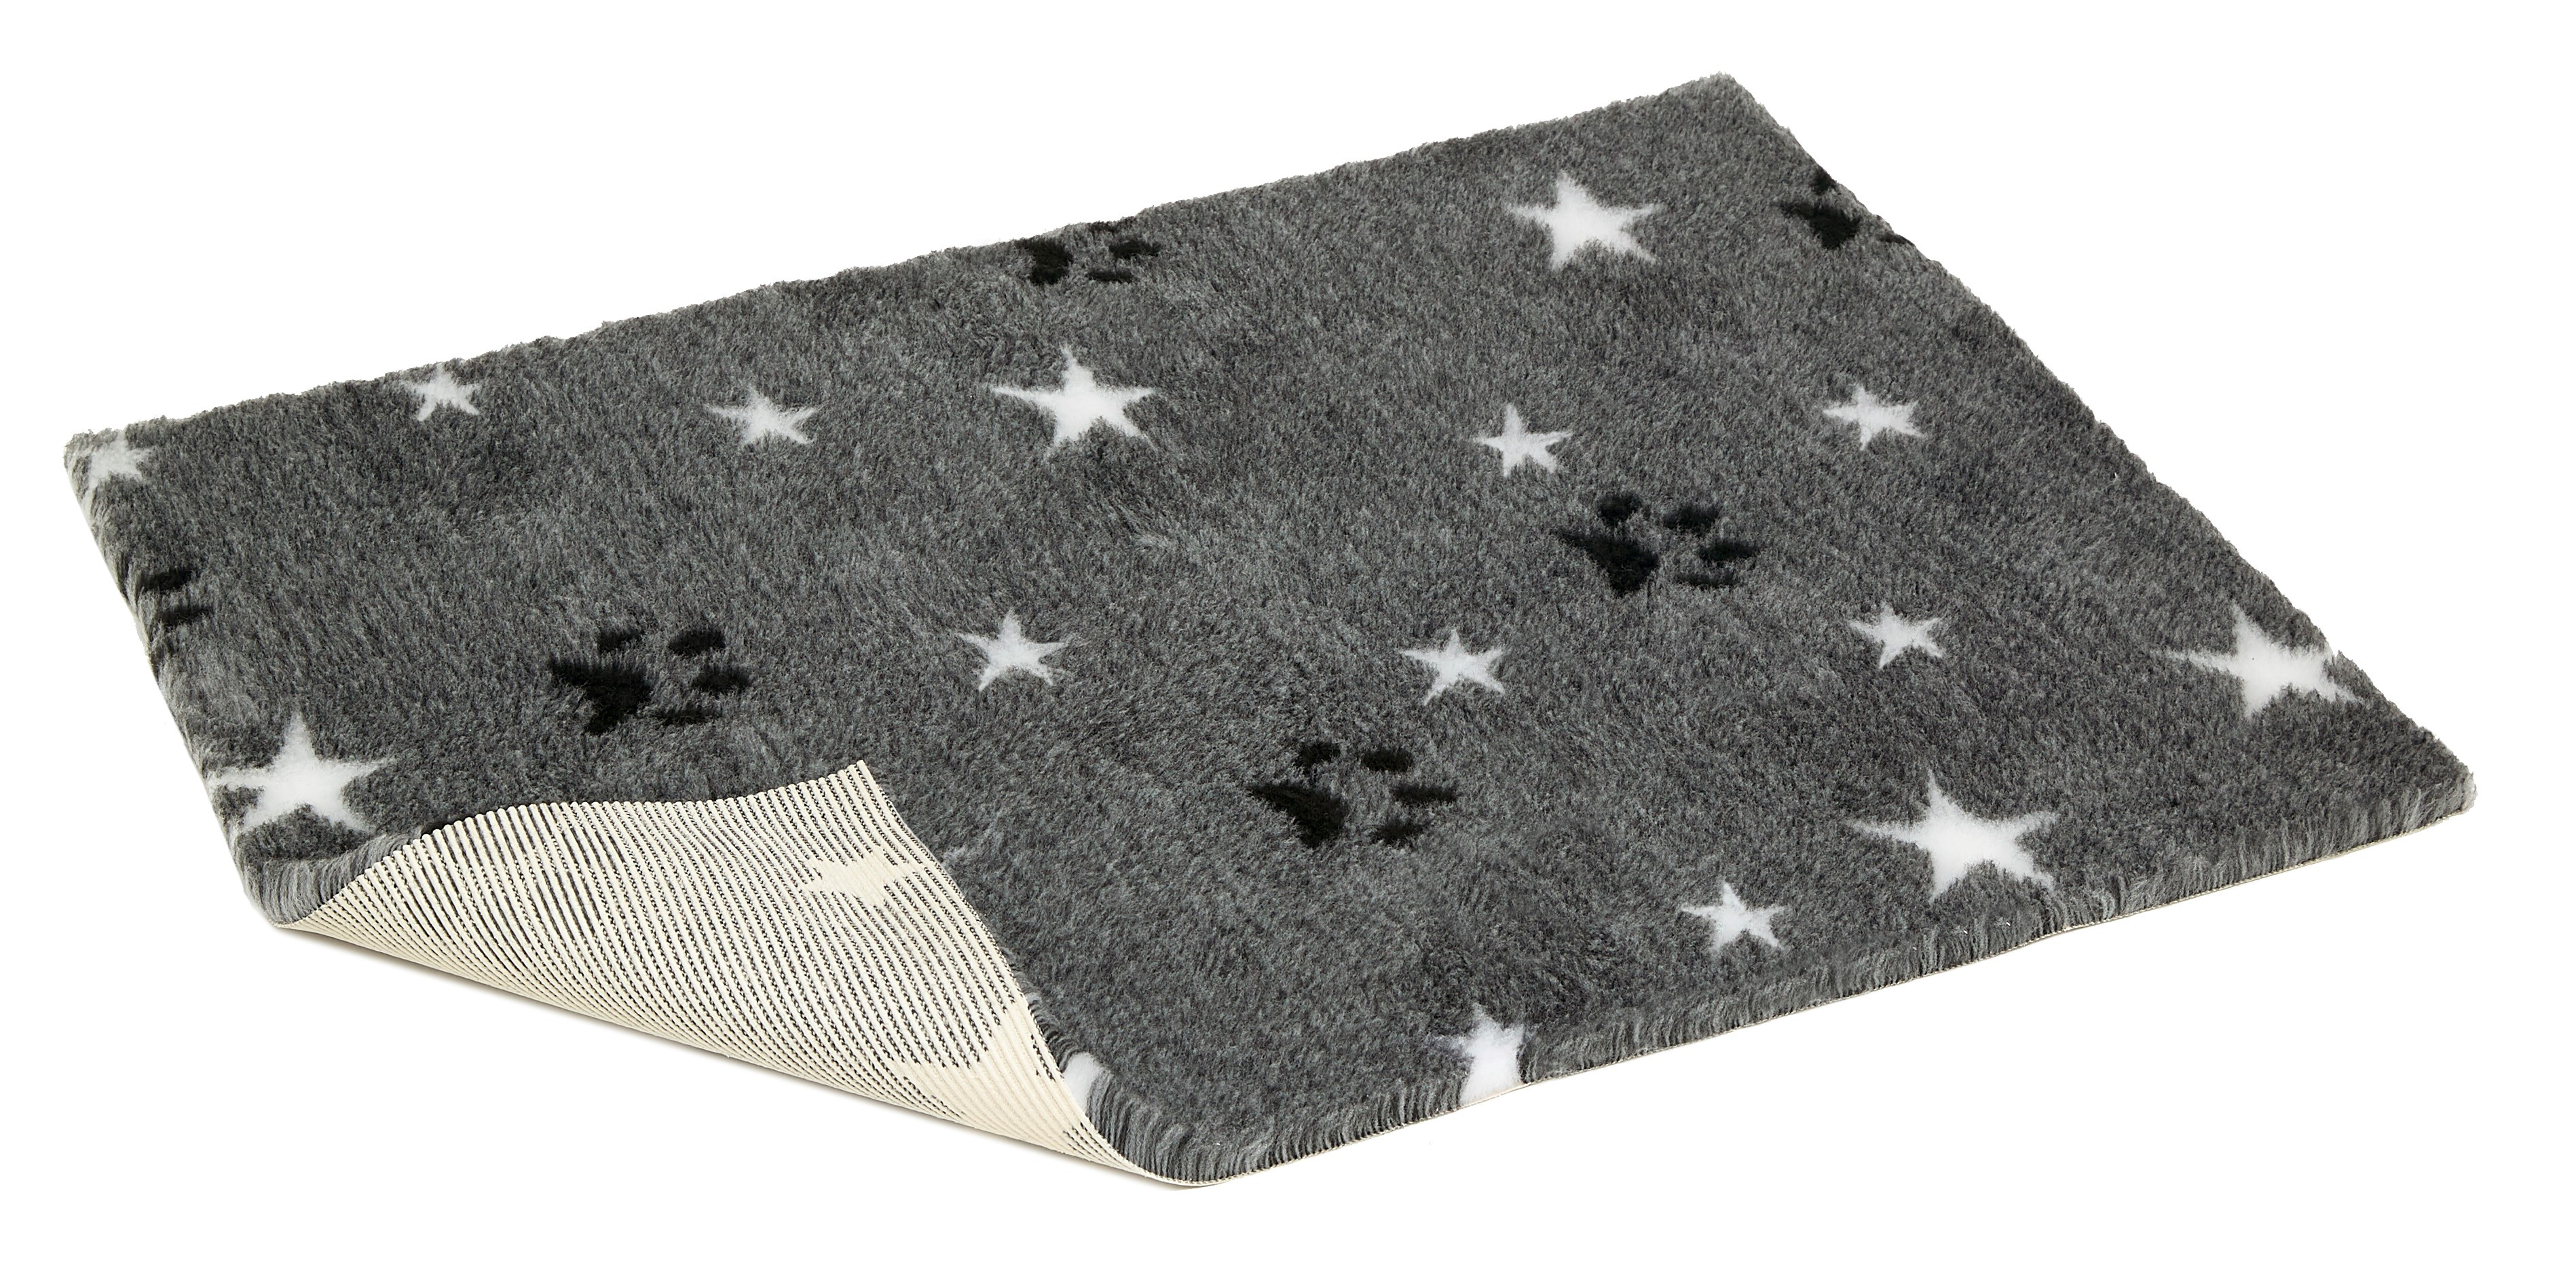 Bedding for dogs and cats and rabbits